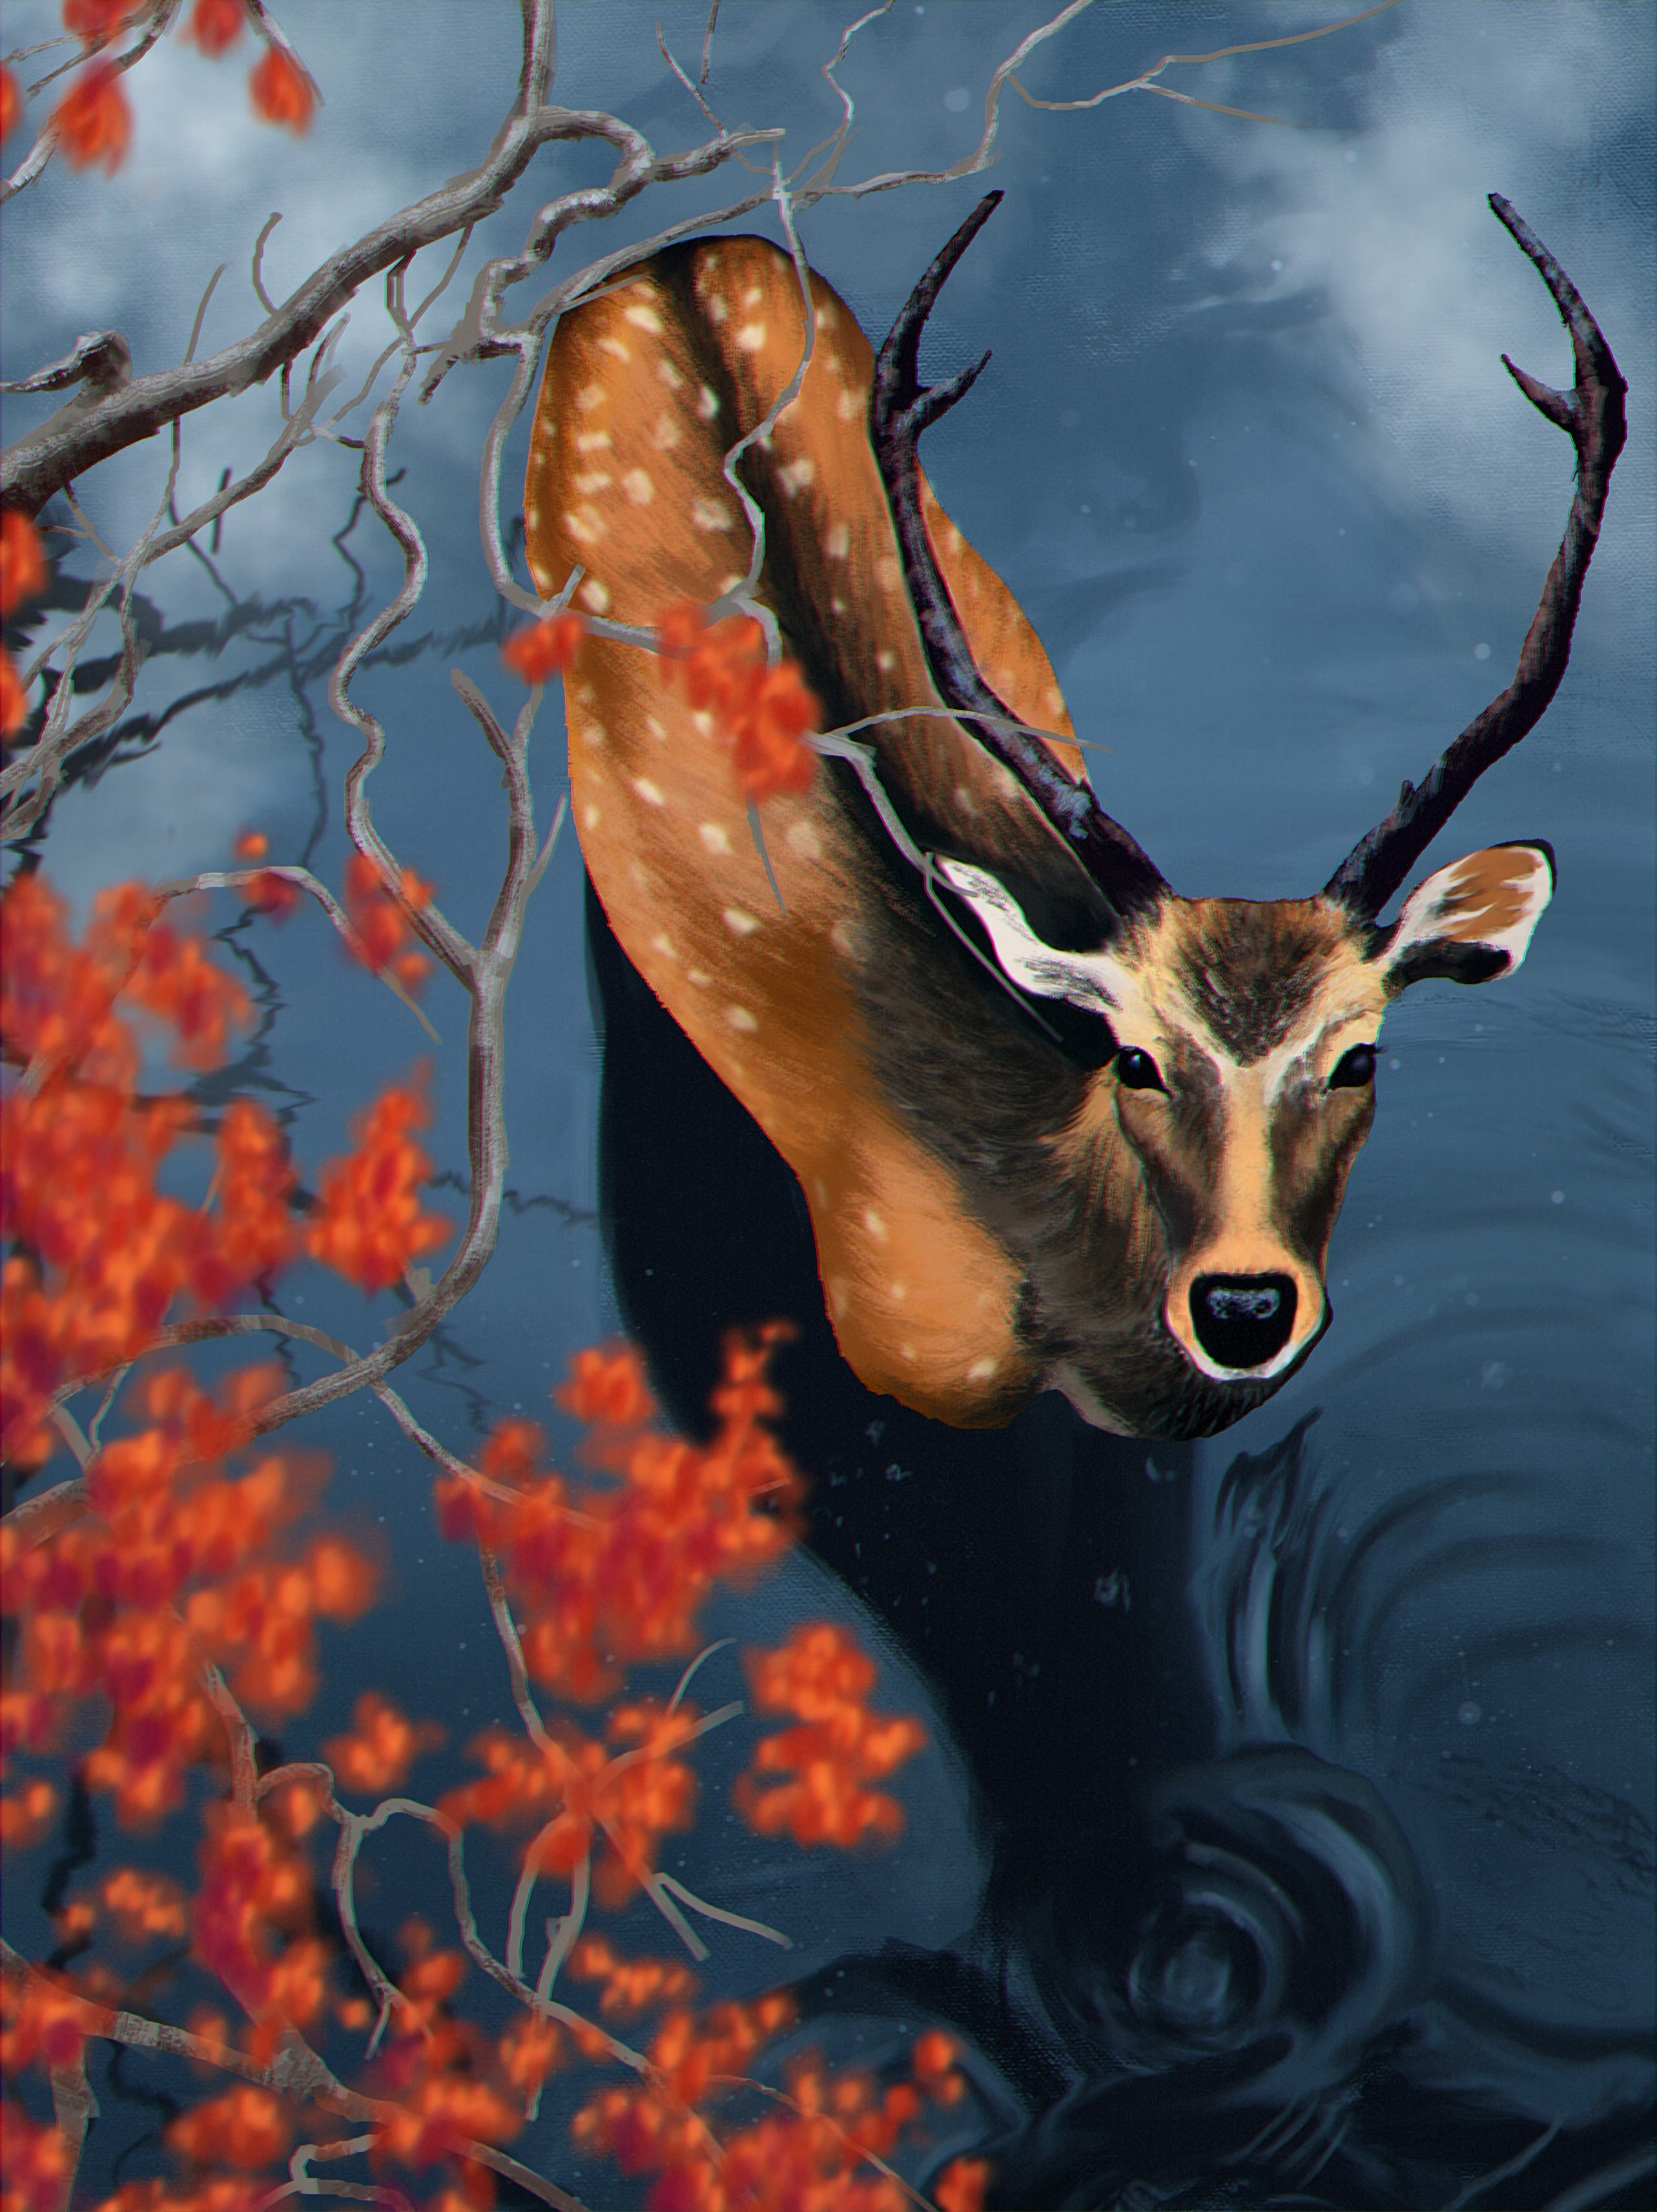 111989 download wallpaper Deer, Water, Branches, Art, Wildlife screensavers and pictures for free